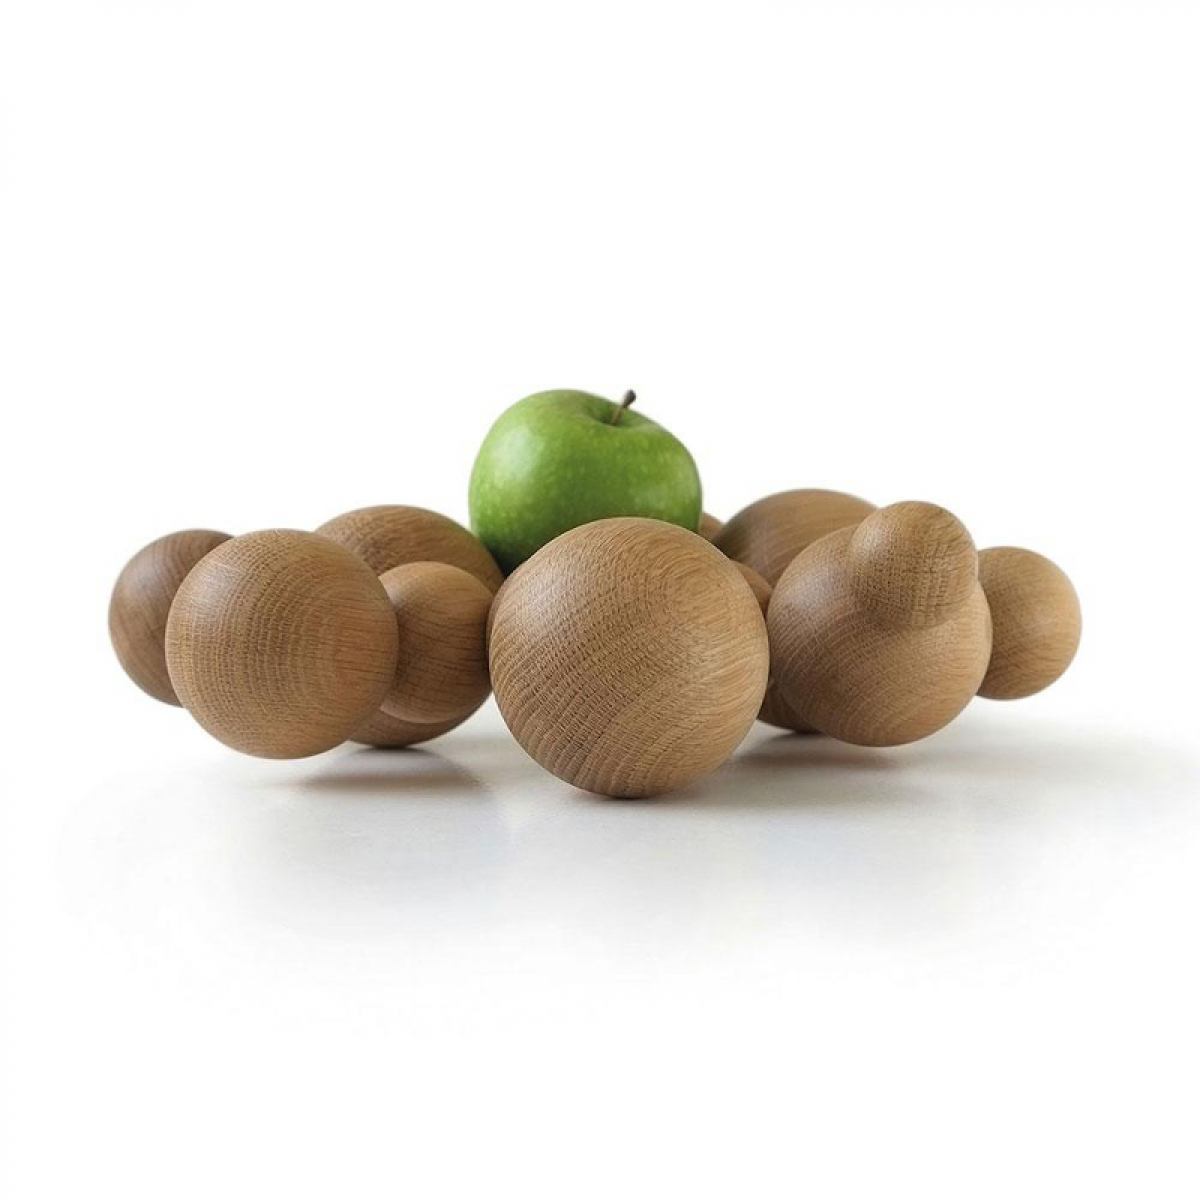 Boule - fruit bowl made of oak wood | Kunstbaron